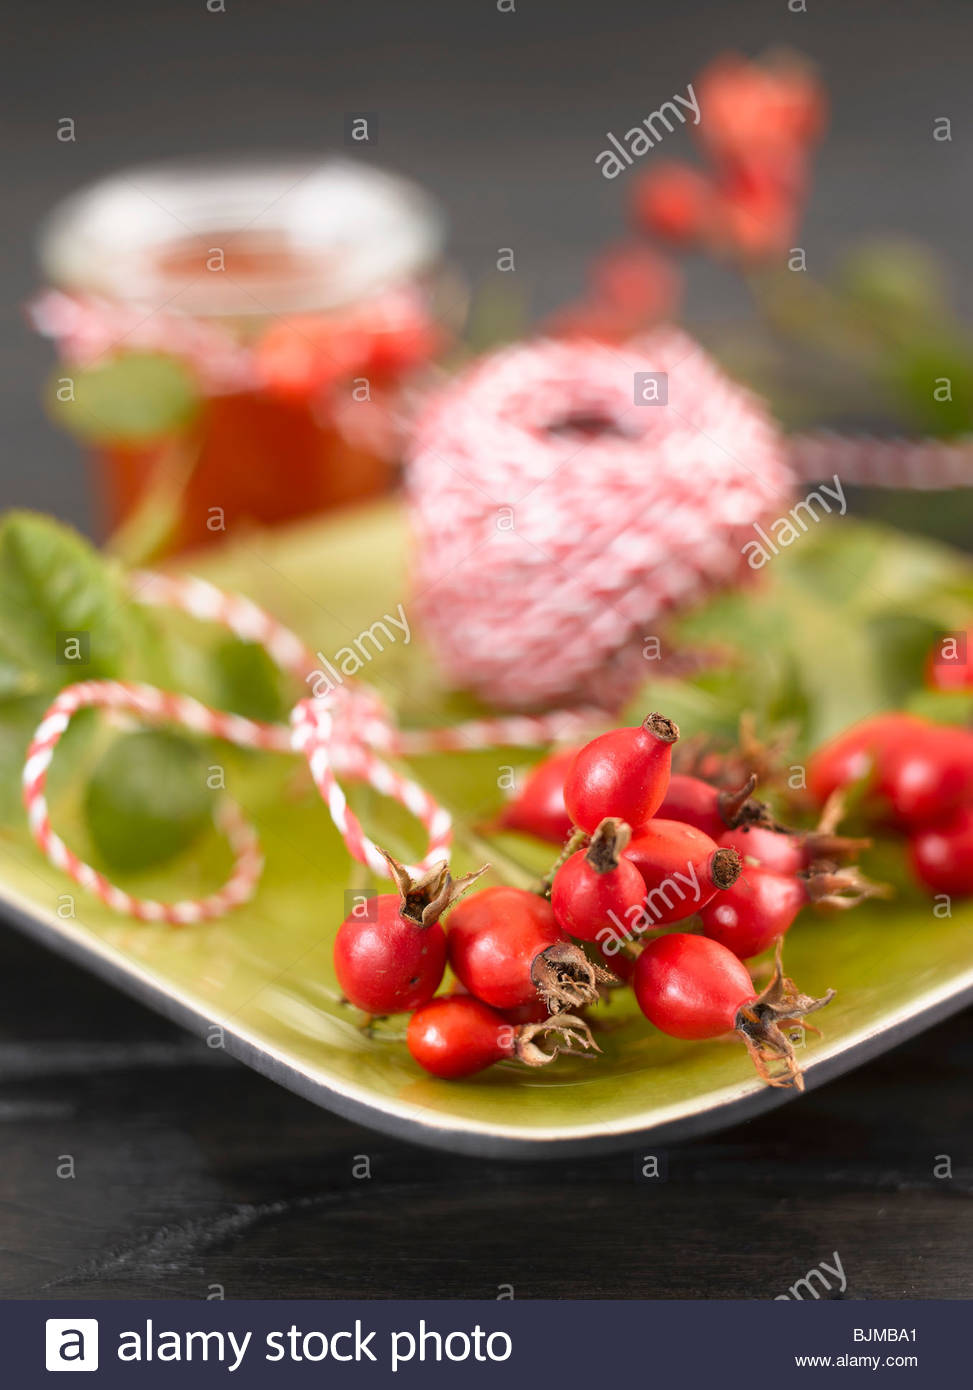 Rose hips on green plate with twine - Stock Image